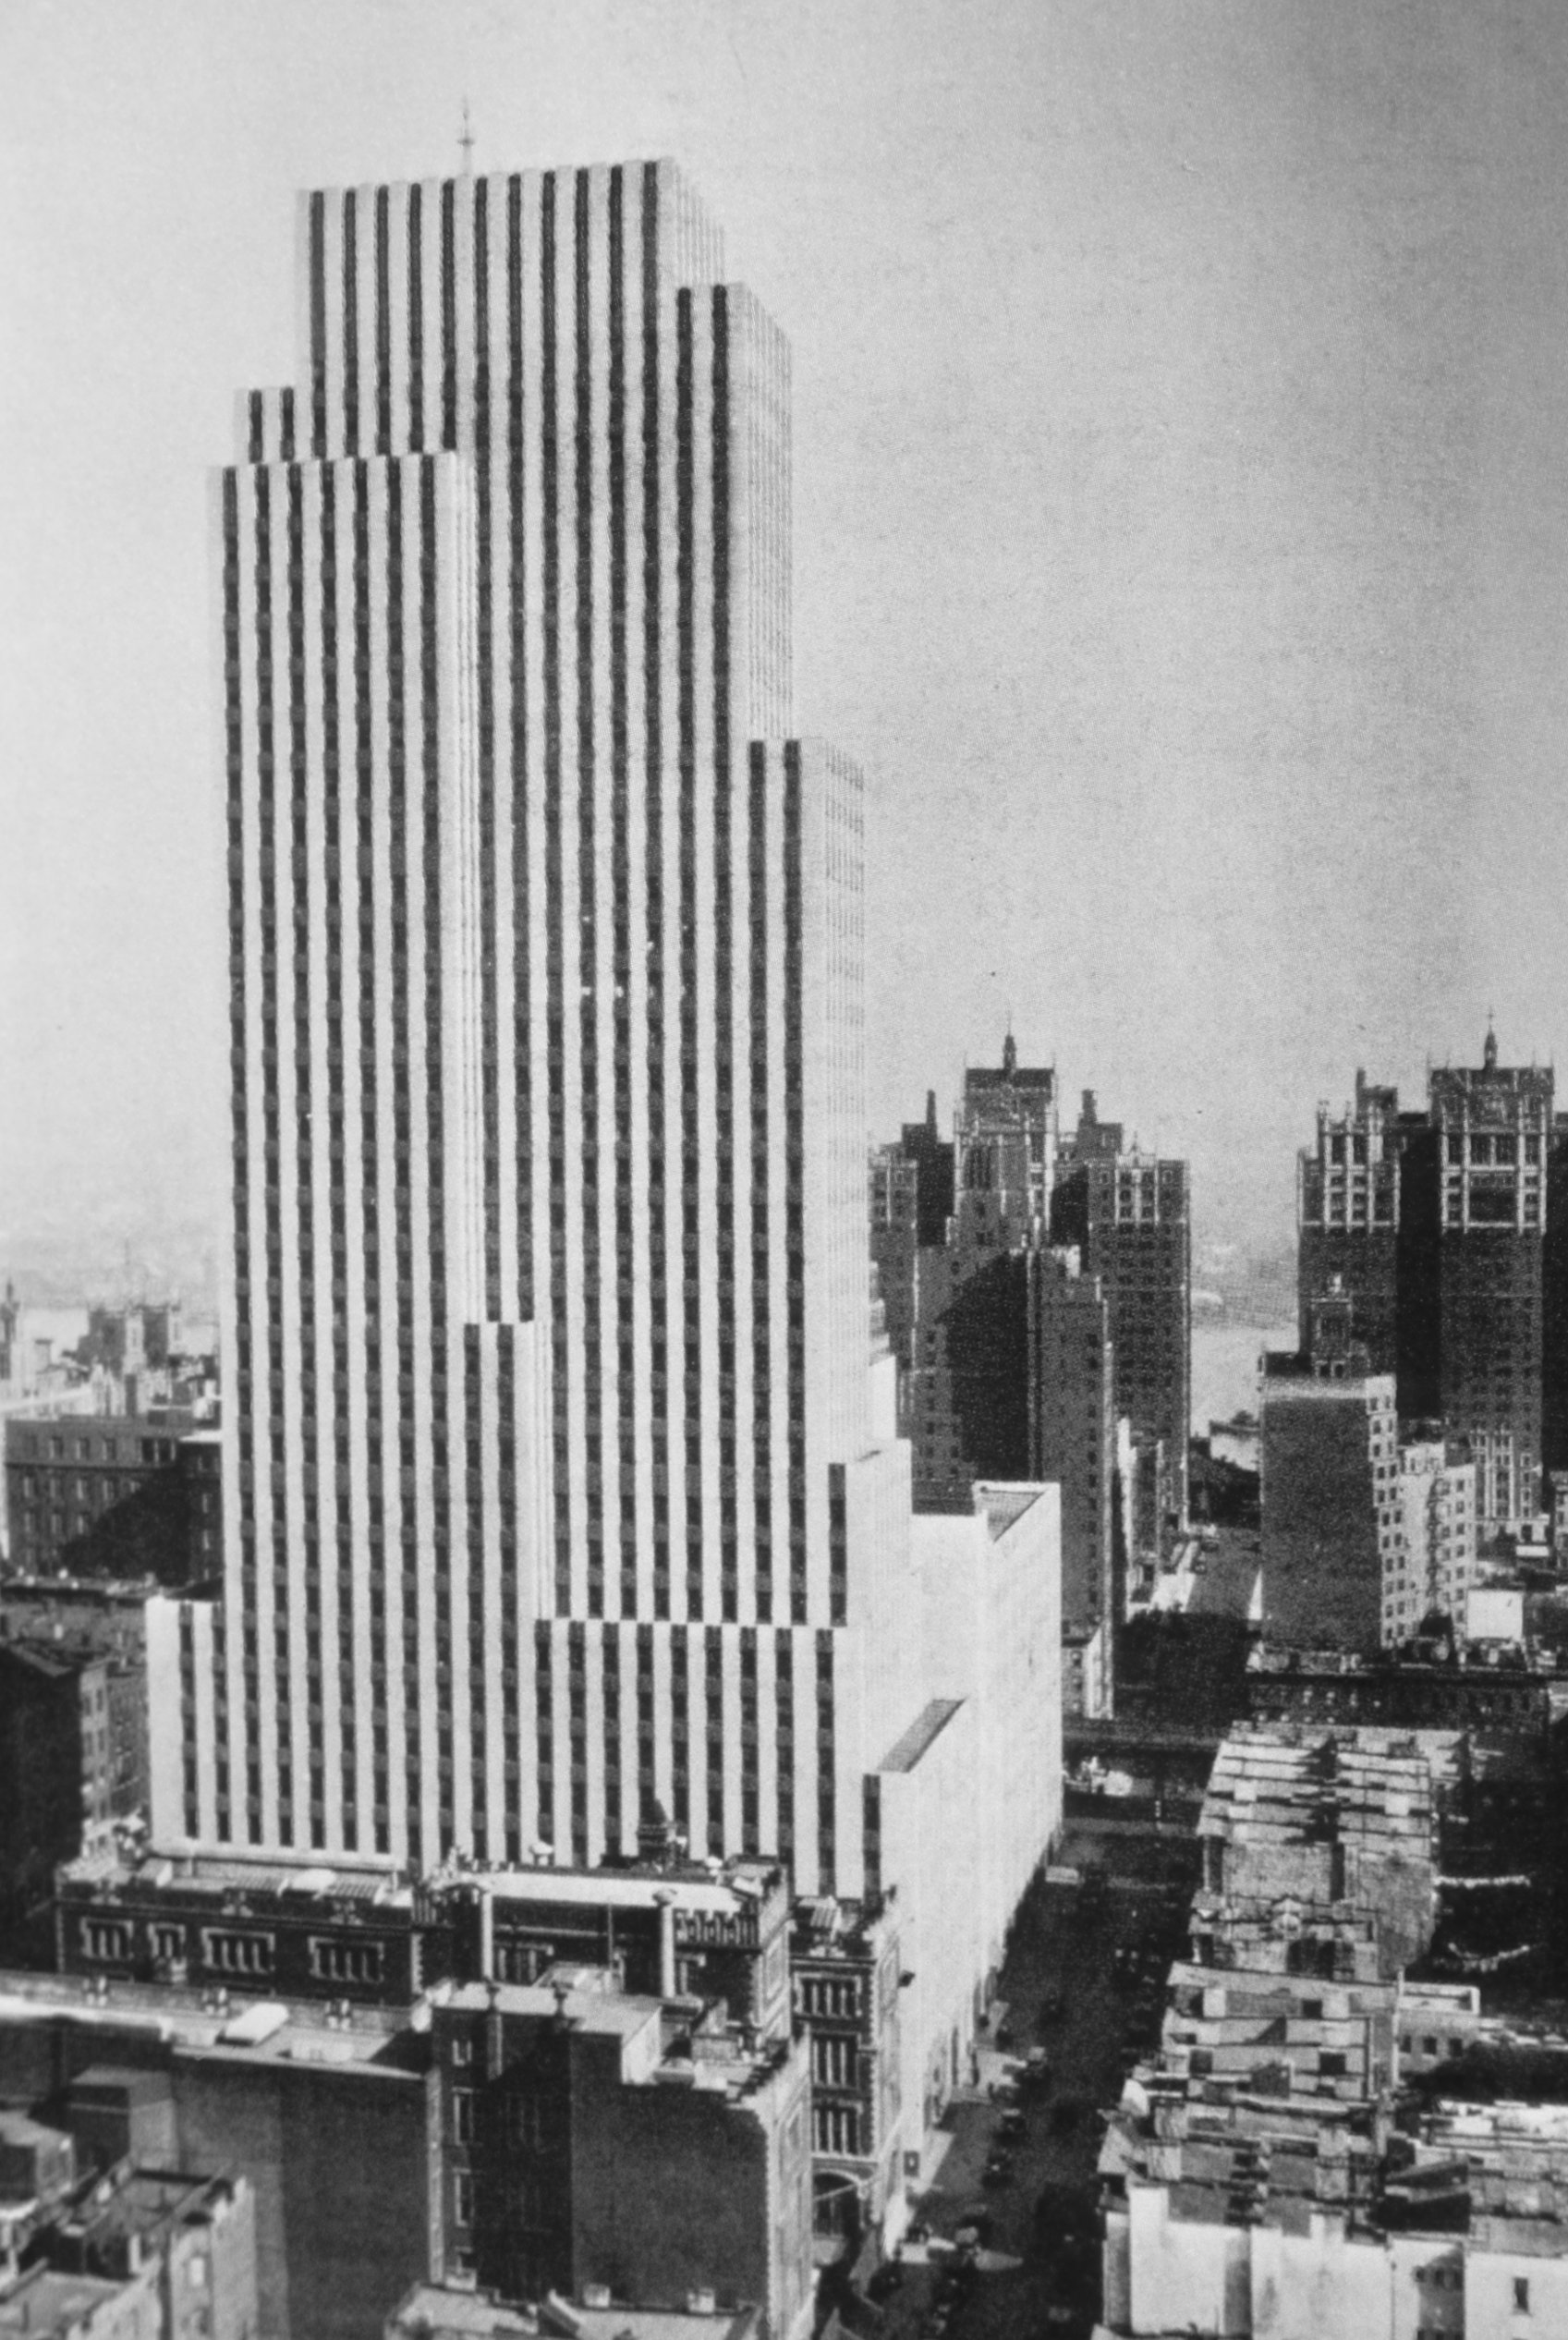 The Daily News Building Note On Slide Andrews Architecture In